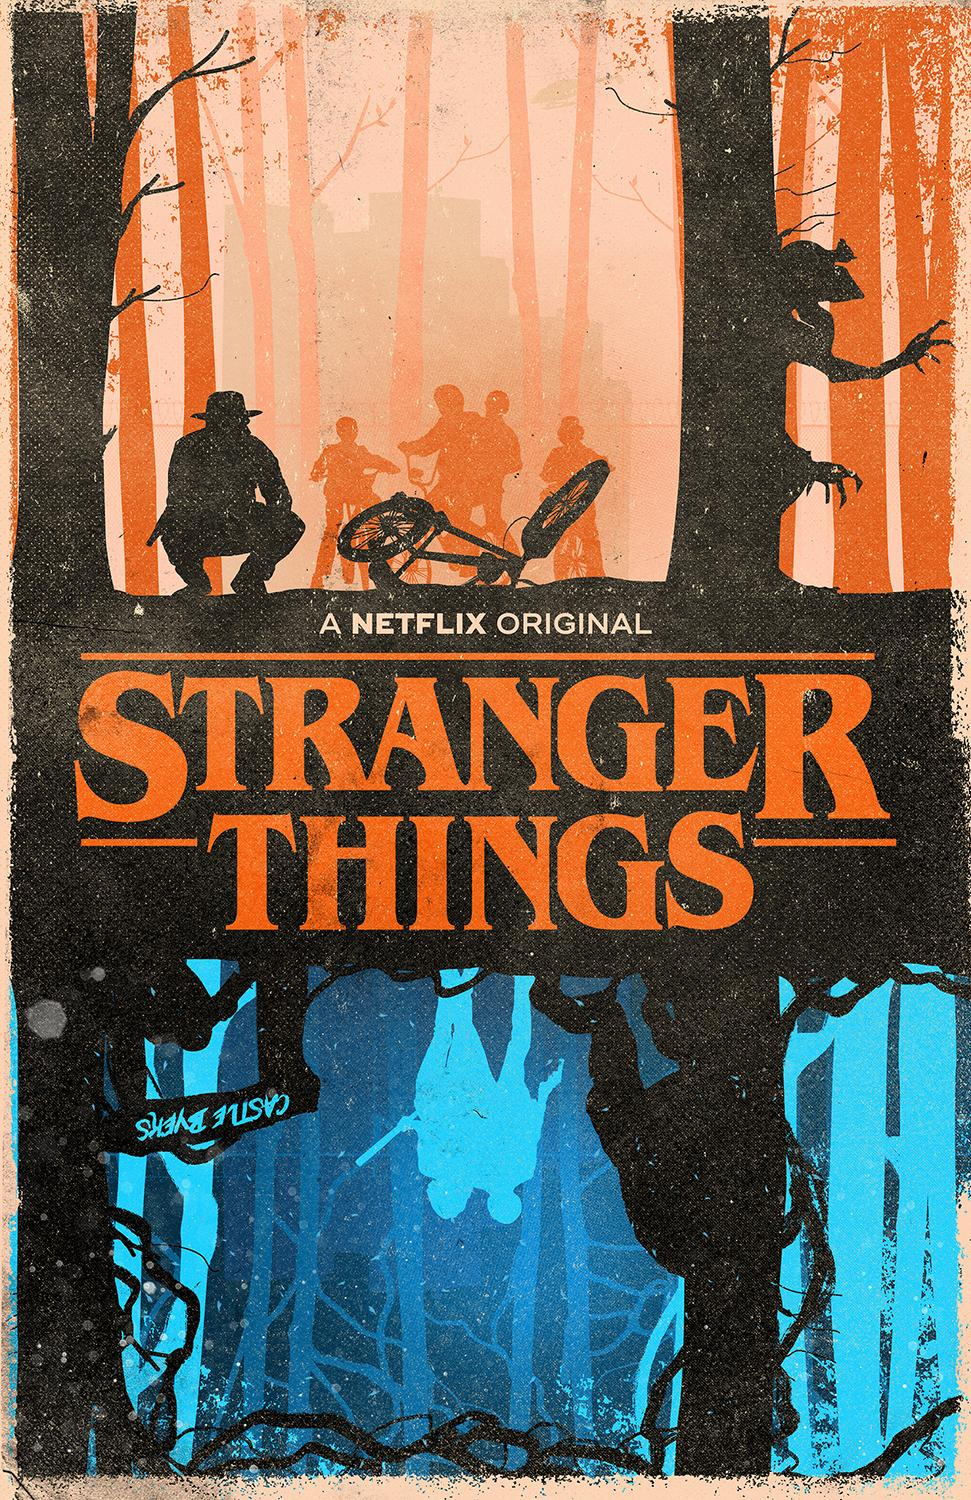 J Caleb uses bright colours and a limited palette to emphasise the difference between Stranger Things' two worlds.